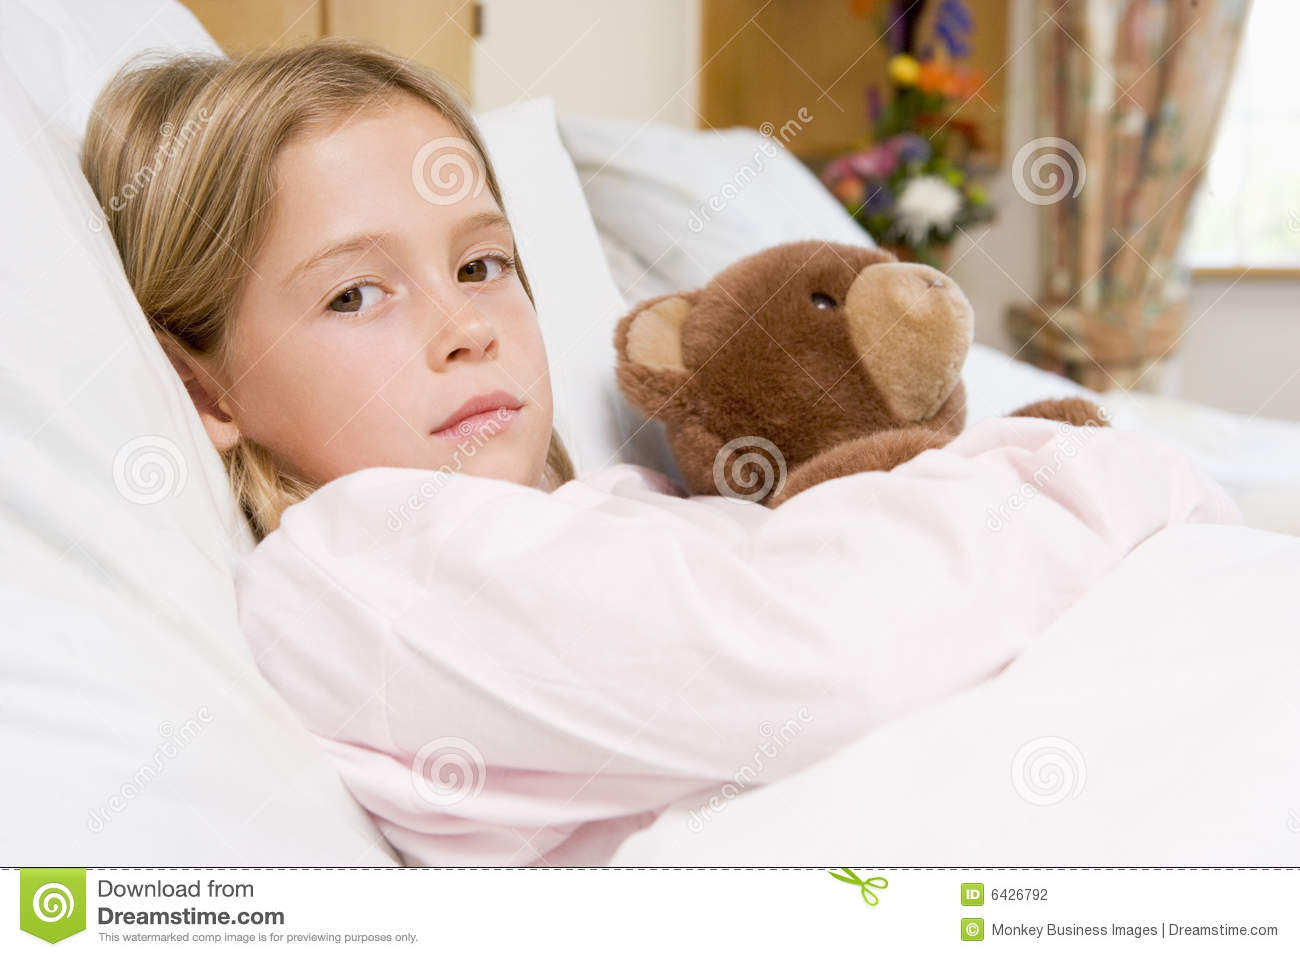 Young Girl Lying In Hospital Bed With Teddy Bear Stock